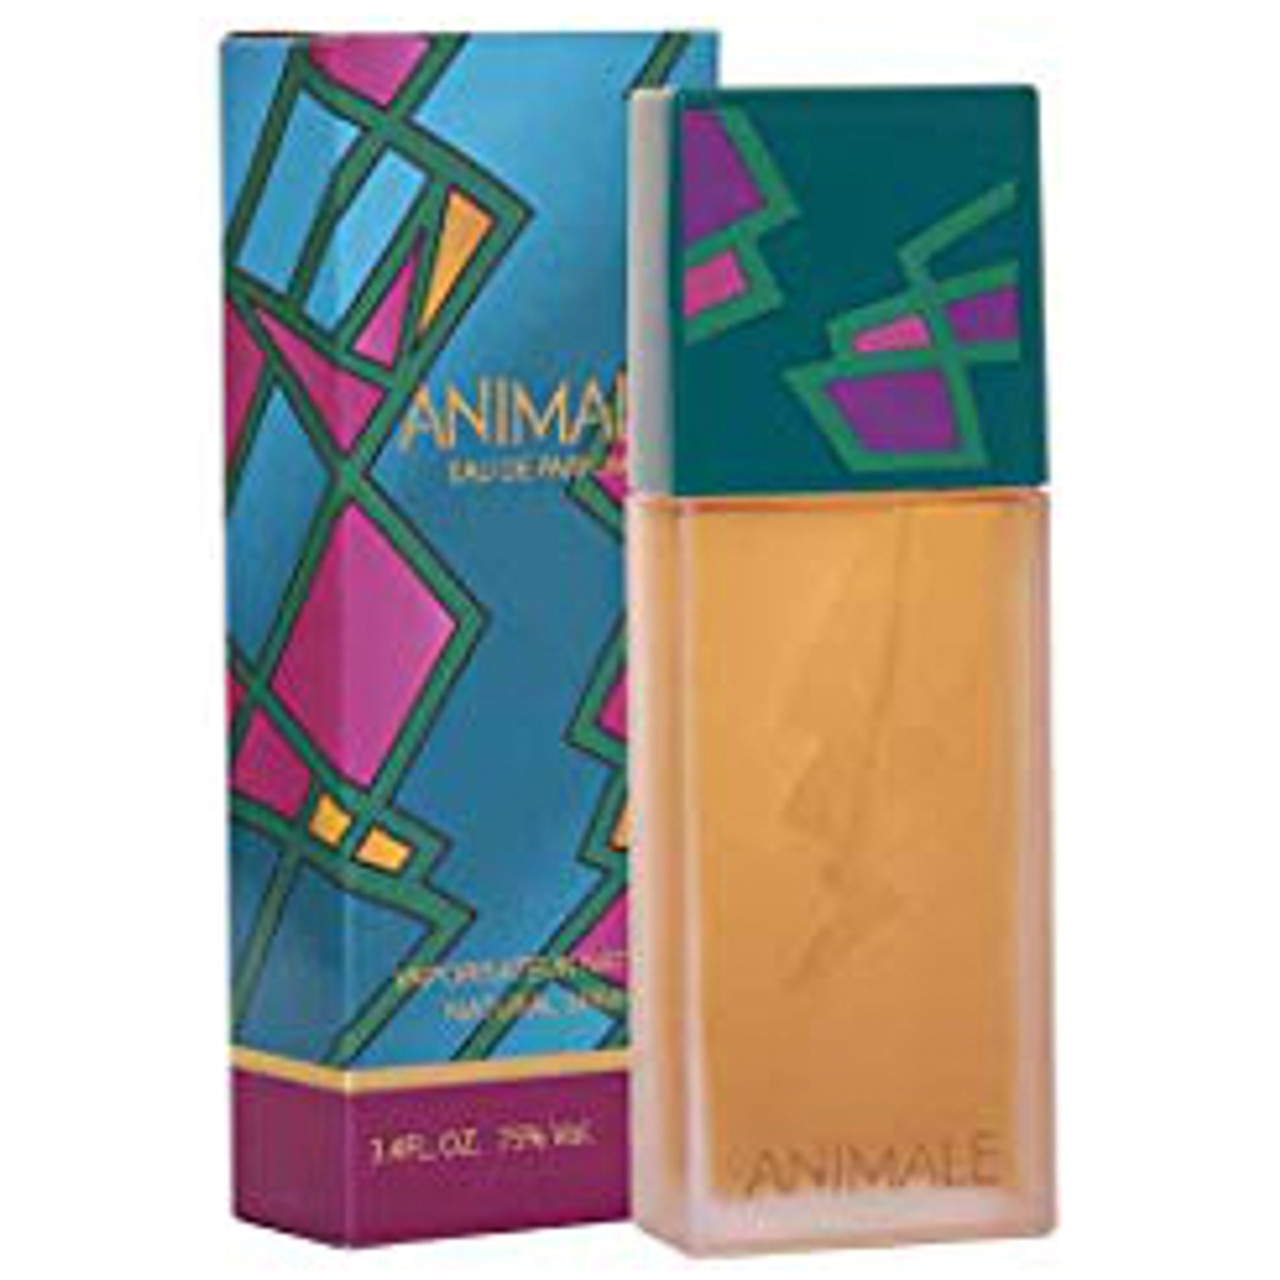 Animale Eau de Parfum Spray 1.7 oz